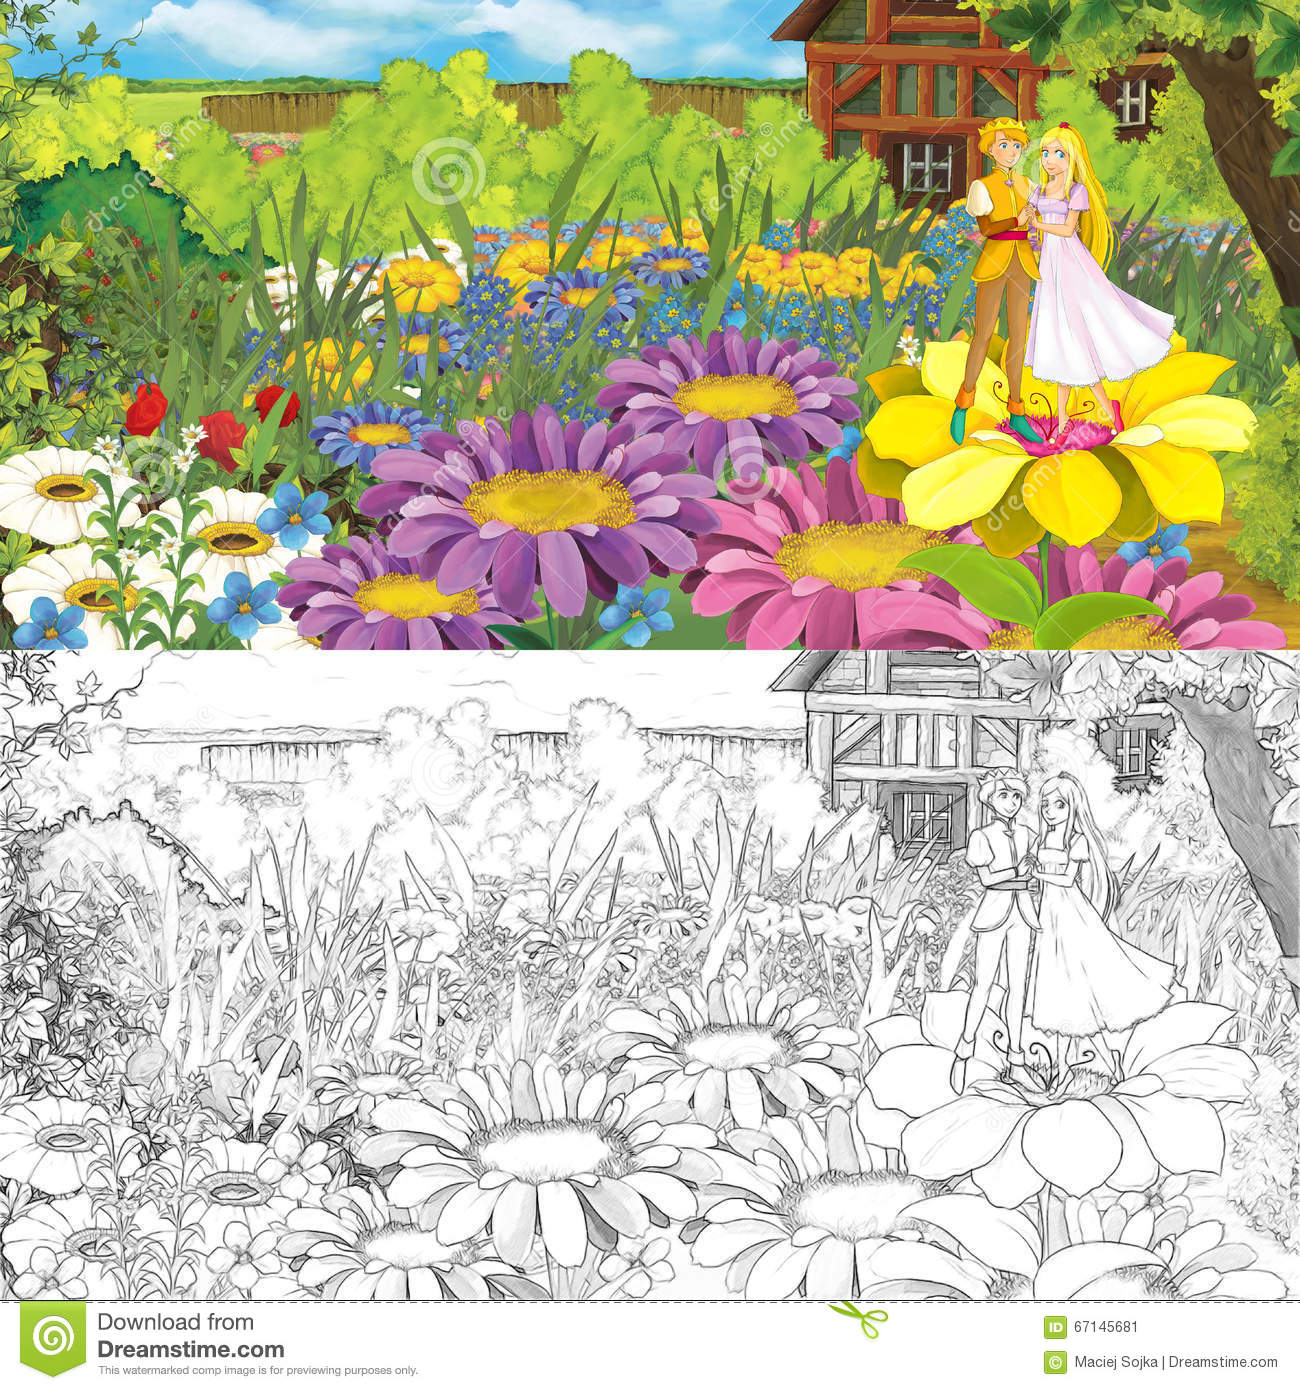 Download Cartoon Farm Scene With Prince And Princess On Flowers